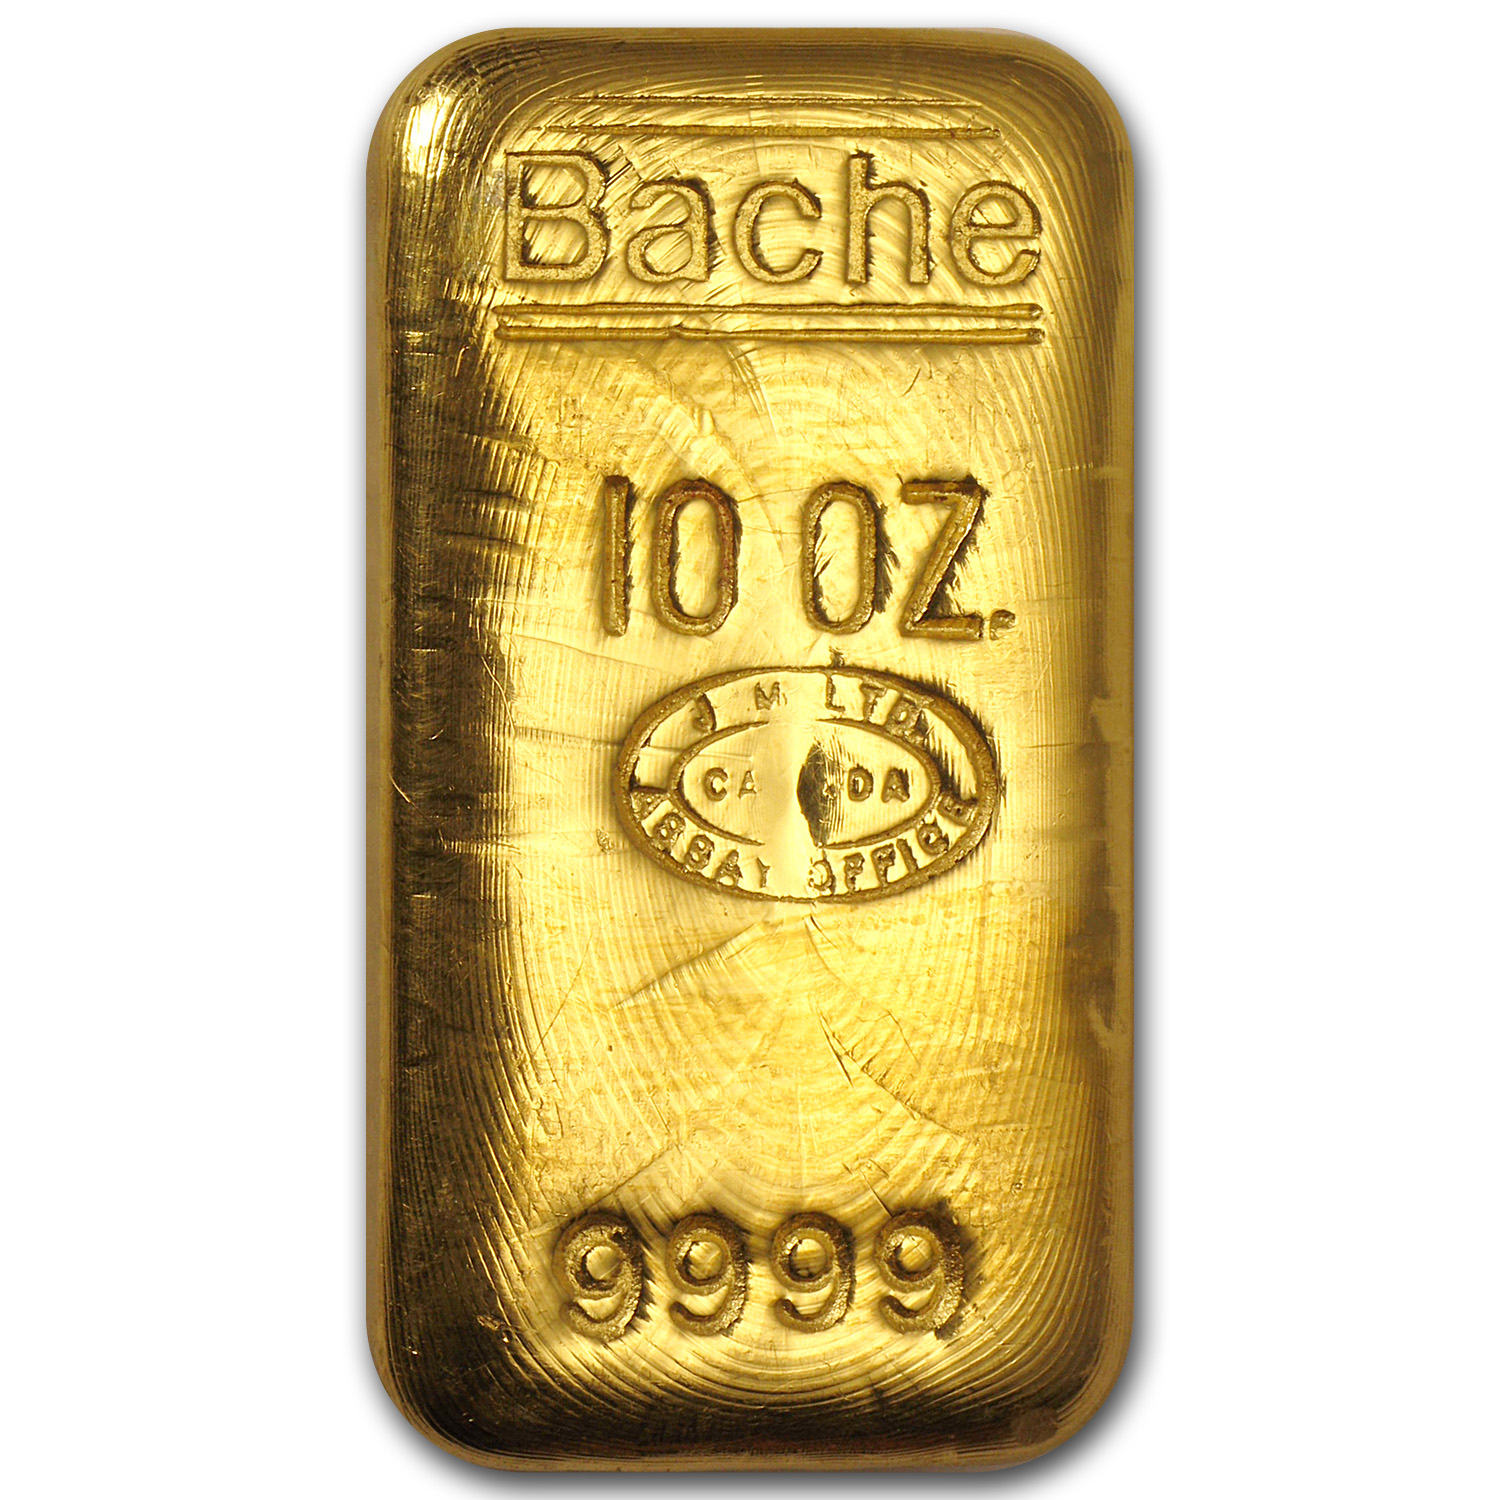 10 oz Gold Bar - Johnson Matthey (Poured, Loaf-Style, Bache)